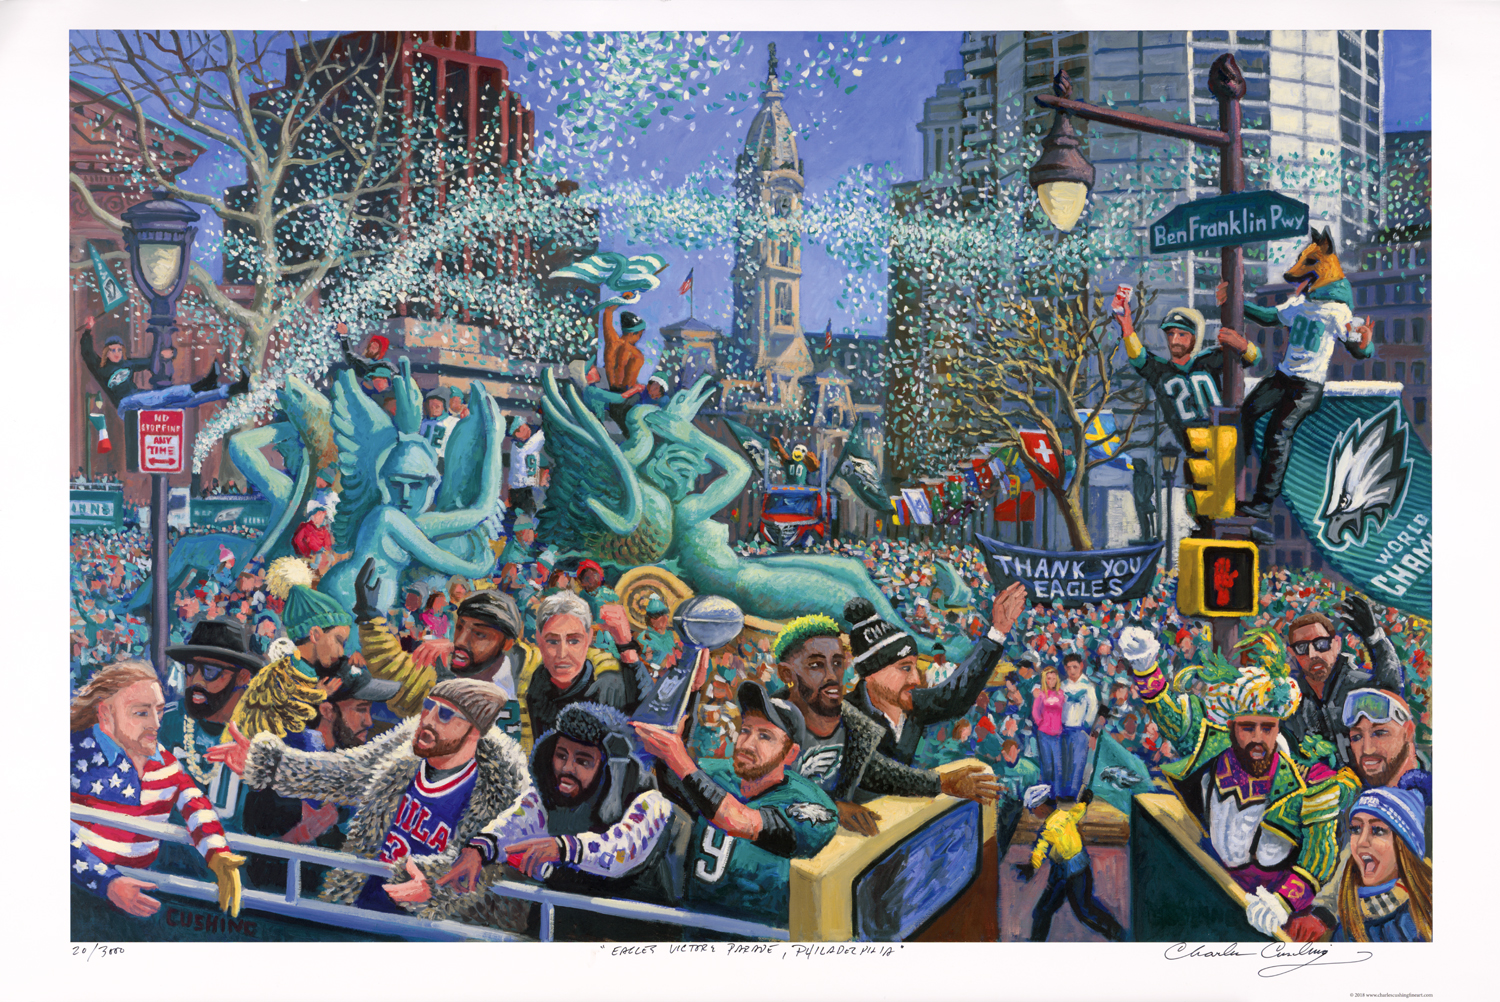 """Hot off the press! My  """"Eagles Victory Parade""""  painting is available as a 24 x 36"""" offset lithograph on 100 lb paper, signed, titled, and numbered in my hand beneath the image (see photo of the print itself). This image is ALSO available as a high-quality """"giclee"""" canvas print in four sizes; 18x 27"""" ($250.00), 24 x 36"""" ($350.00), 32 x 48"""" ($500.00), 40 x 60"""" ($800).These are prices for unmounted and unframed print, shipped rolled in a tube shipping is $10.00 extra. I also offer mounting and framing options, and special sizes. Click on STORE page to order or call me for details at 267-679-7853."""